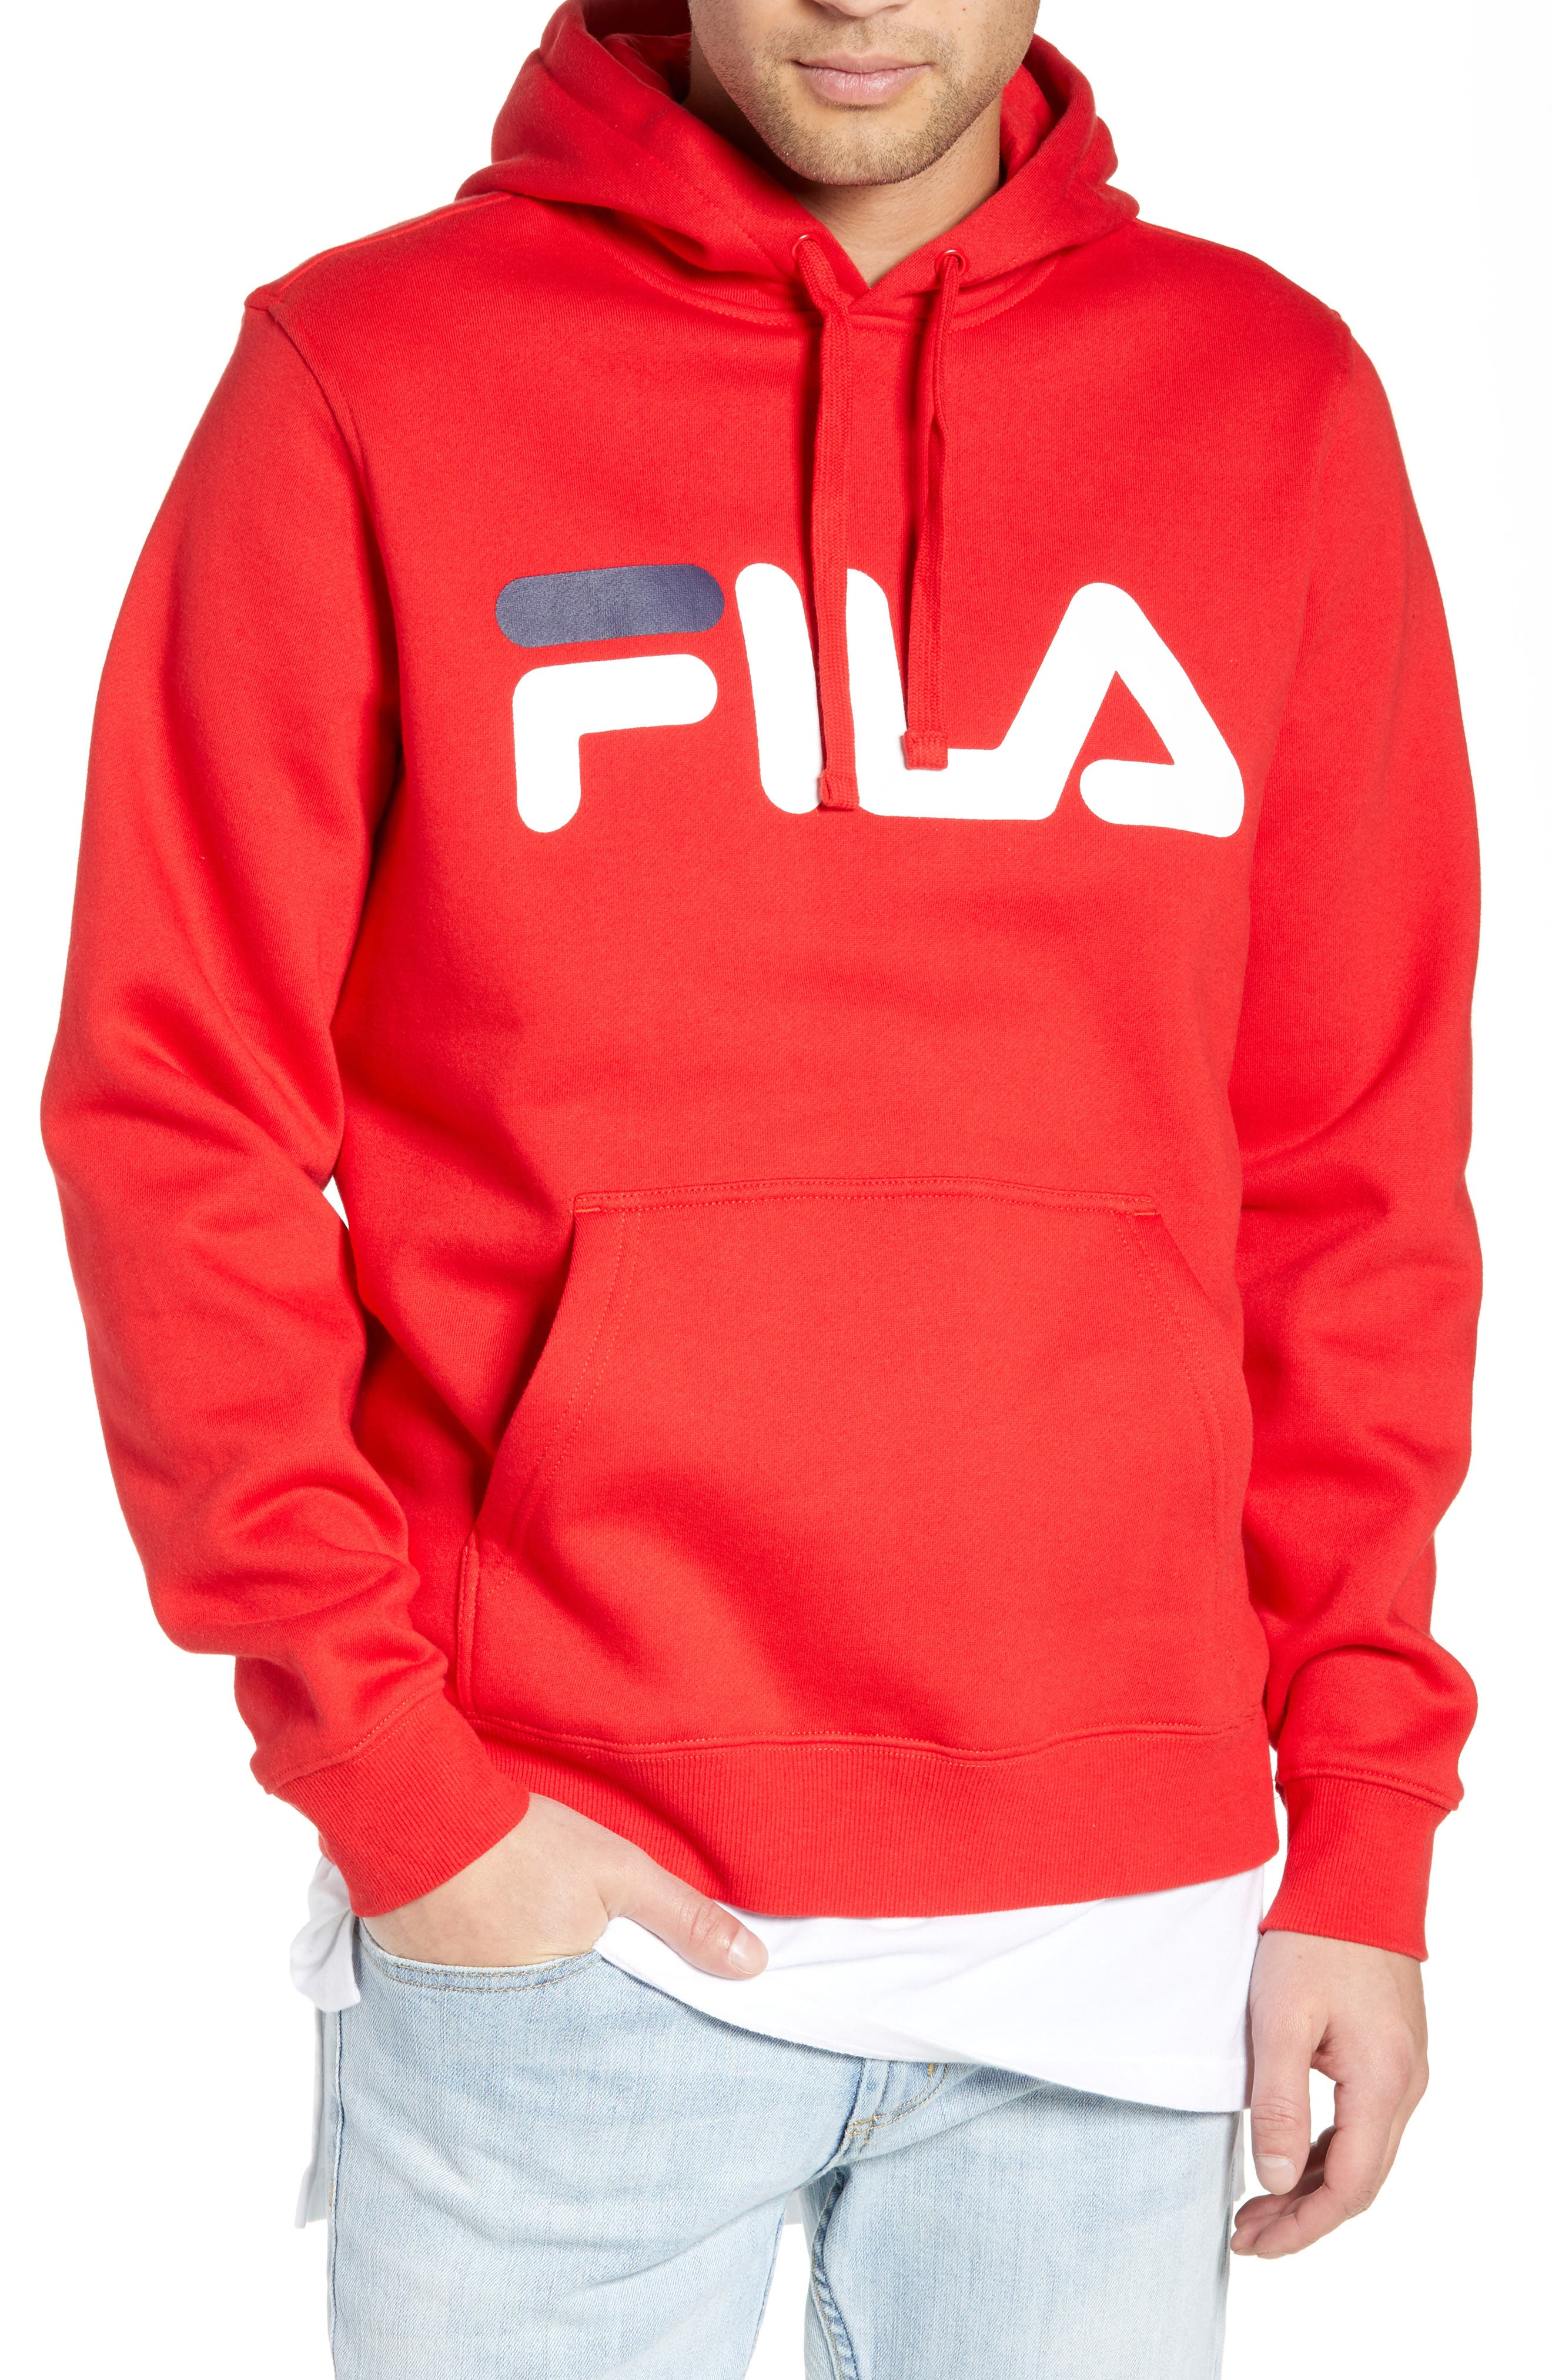 Logo Graphic Hooded Sweatshirt,                             Main thumbnail 1, color,                             CHINESE RED/ WHITE/ NAVY